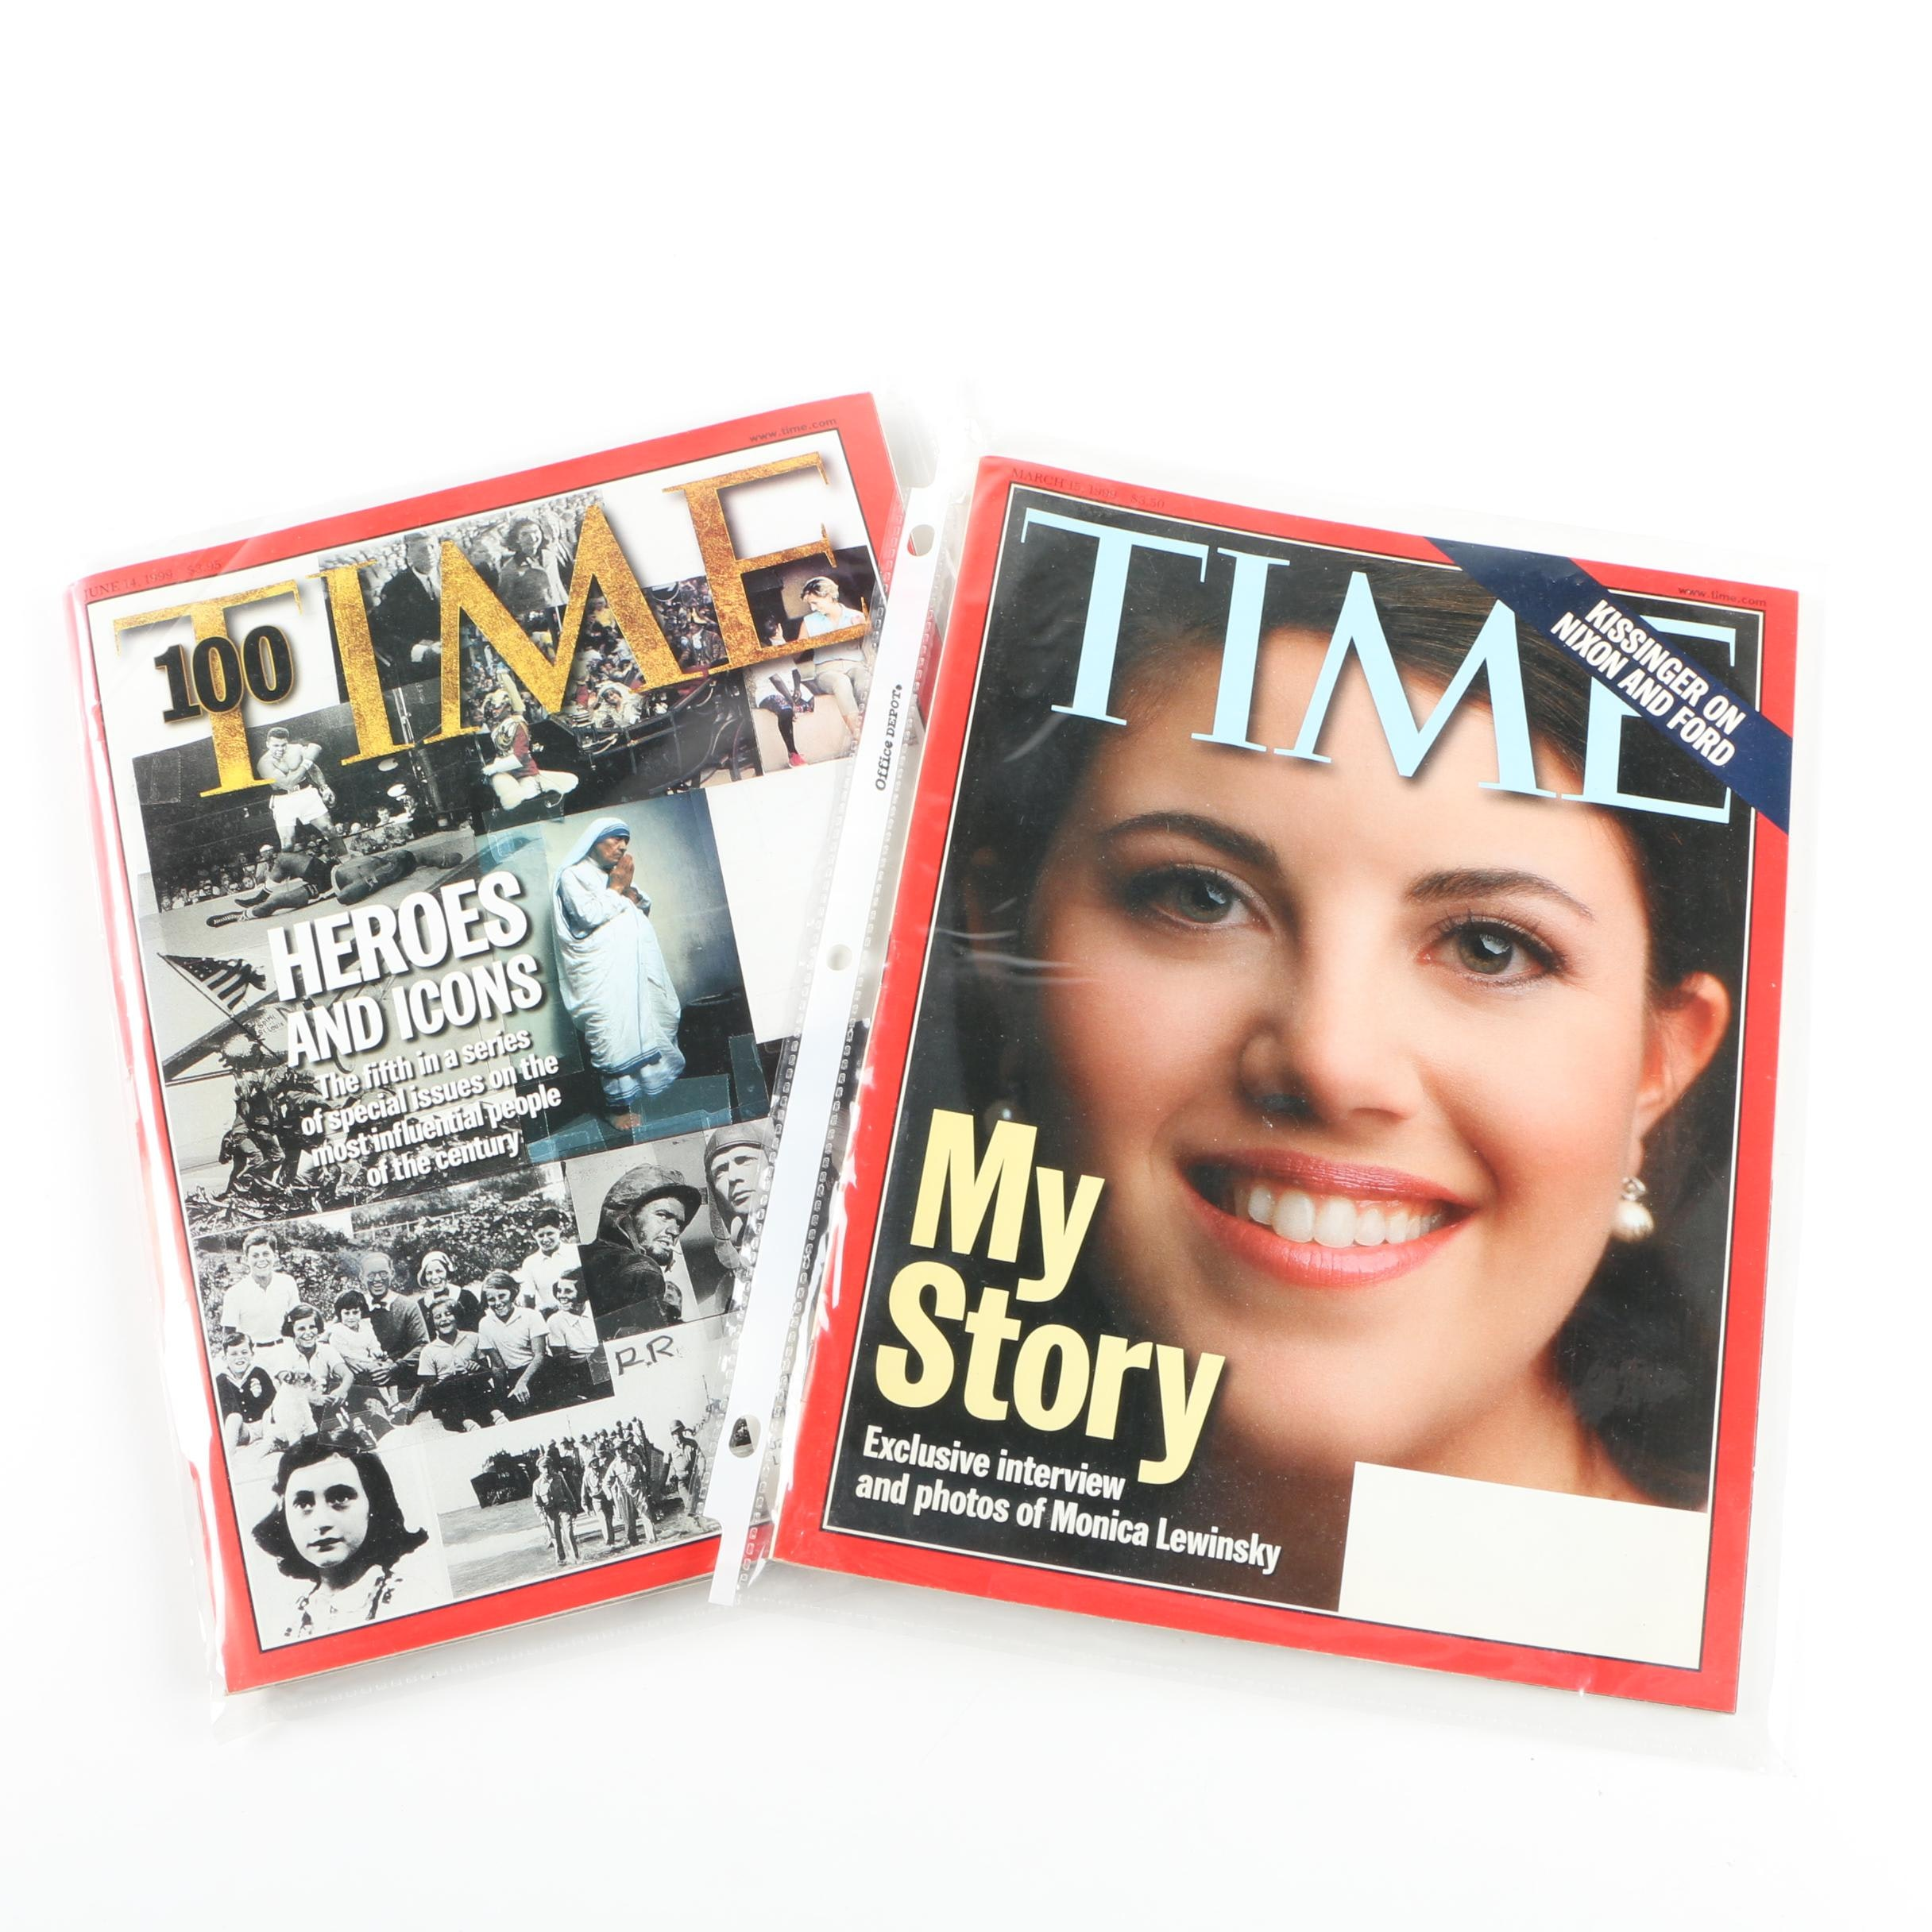 """""""Time"""" Magazines featuring """"Heroes and Icons"""" and Monica Lewinsky"""